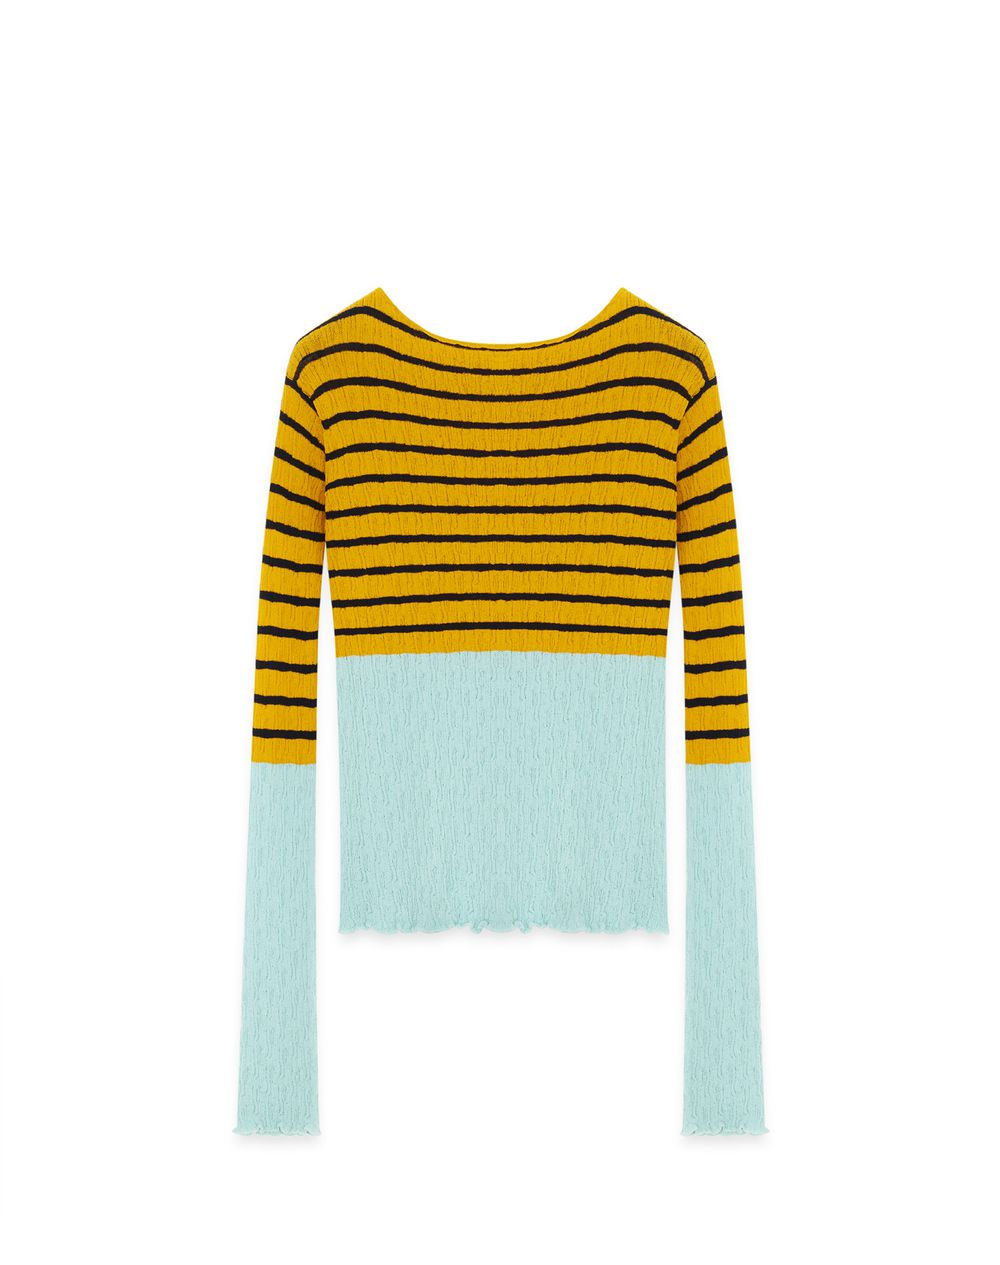 STRIPED KNIT TOP - Lanvin